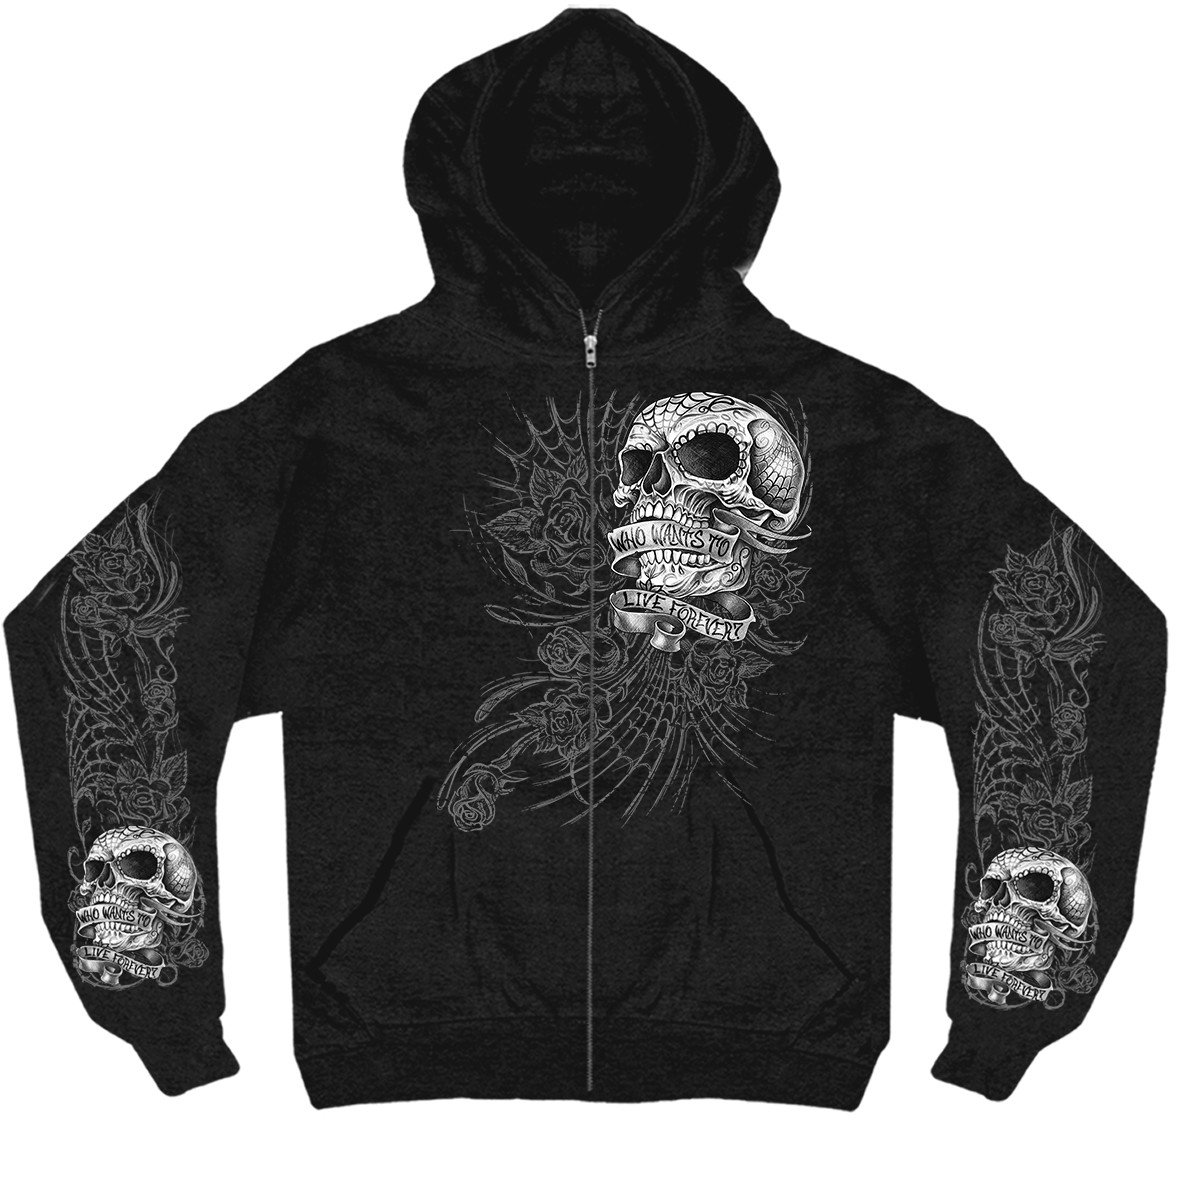 Black, X-Large Hot Leathers Mens Sweet Demise Zip Up Hooded Sweat Shirt